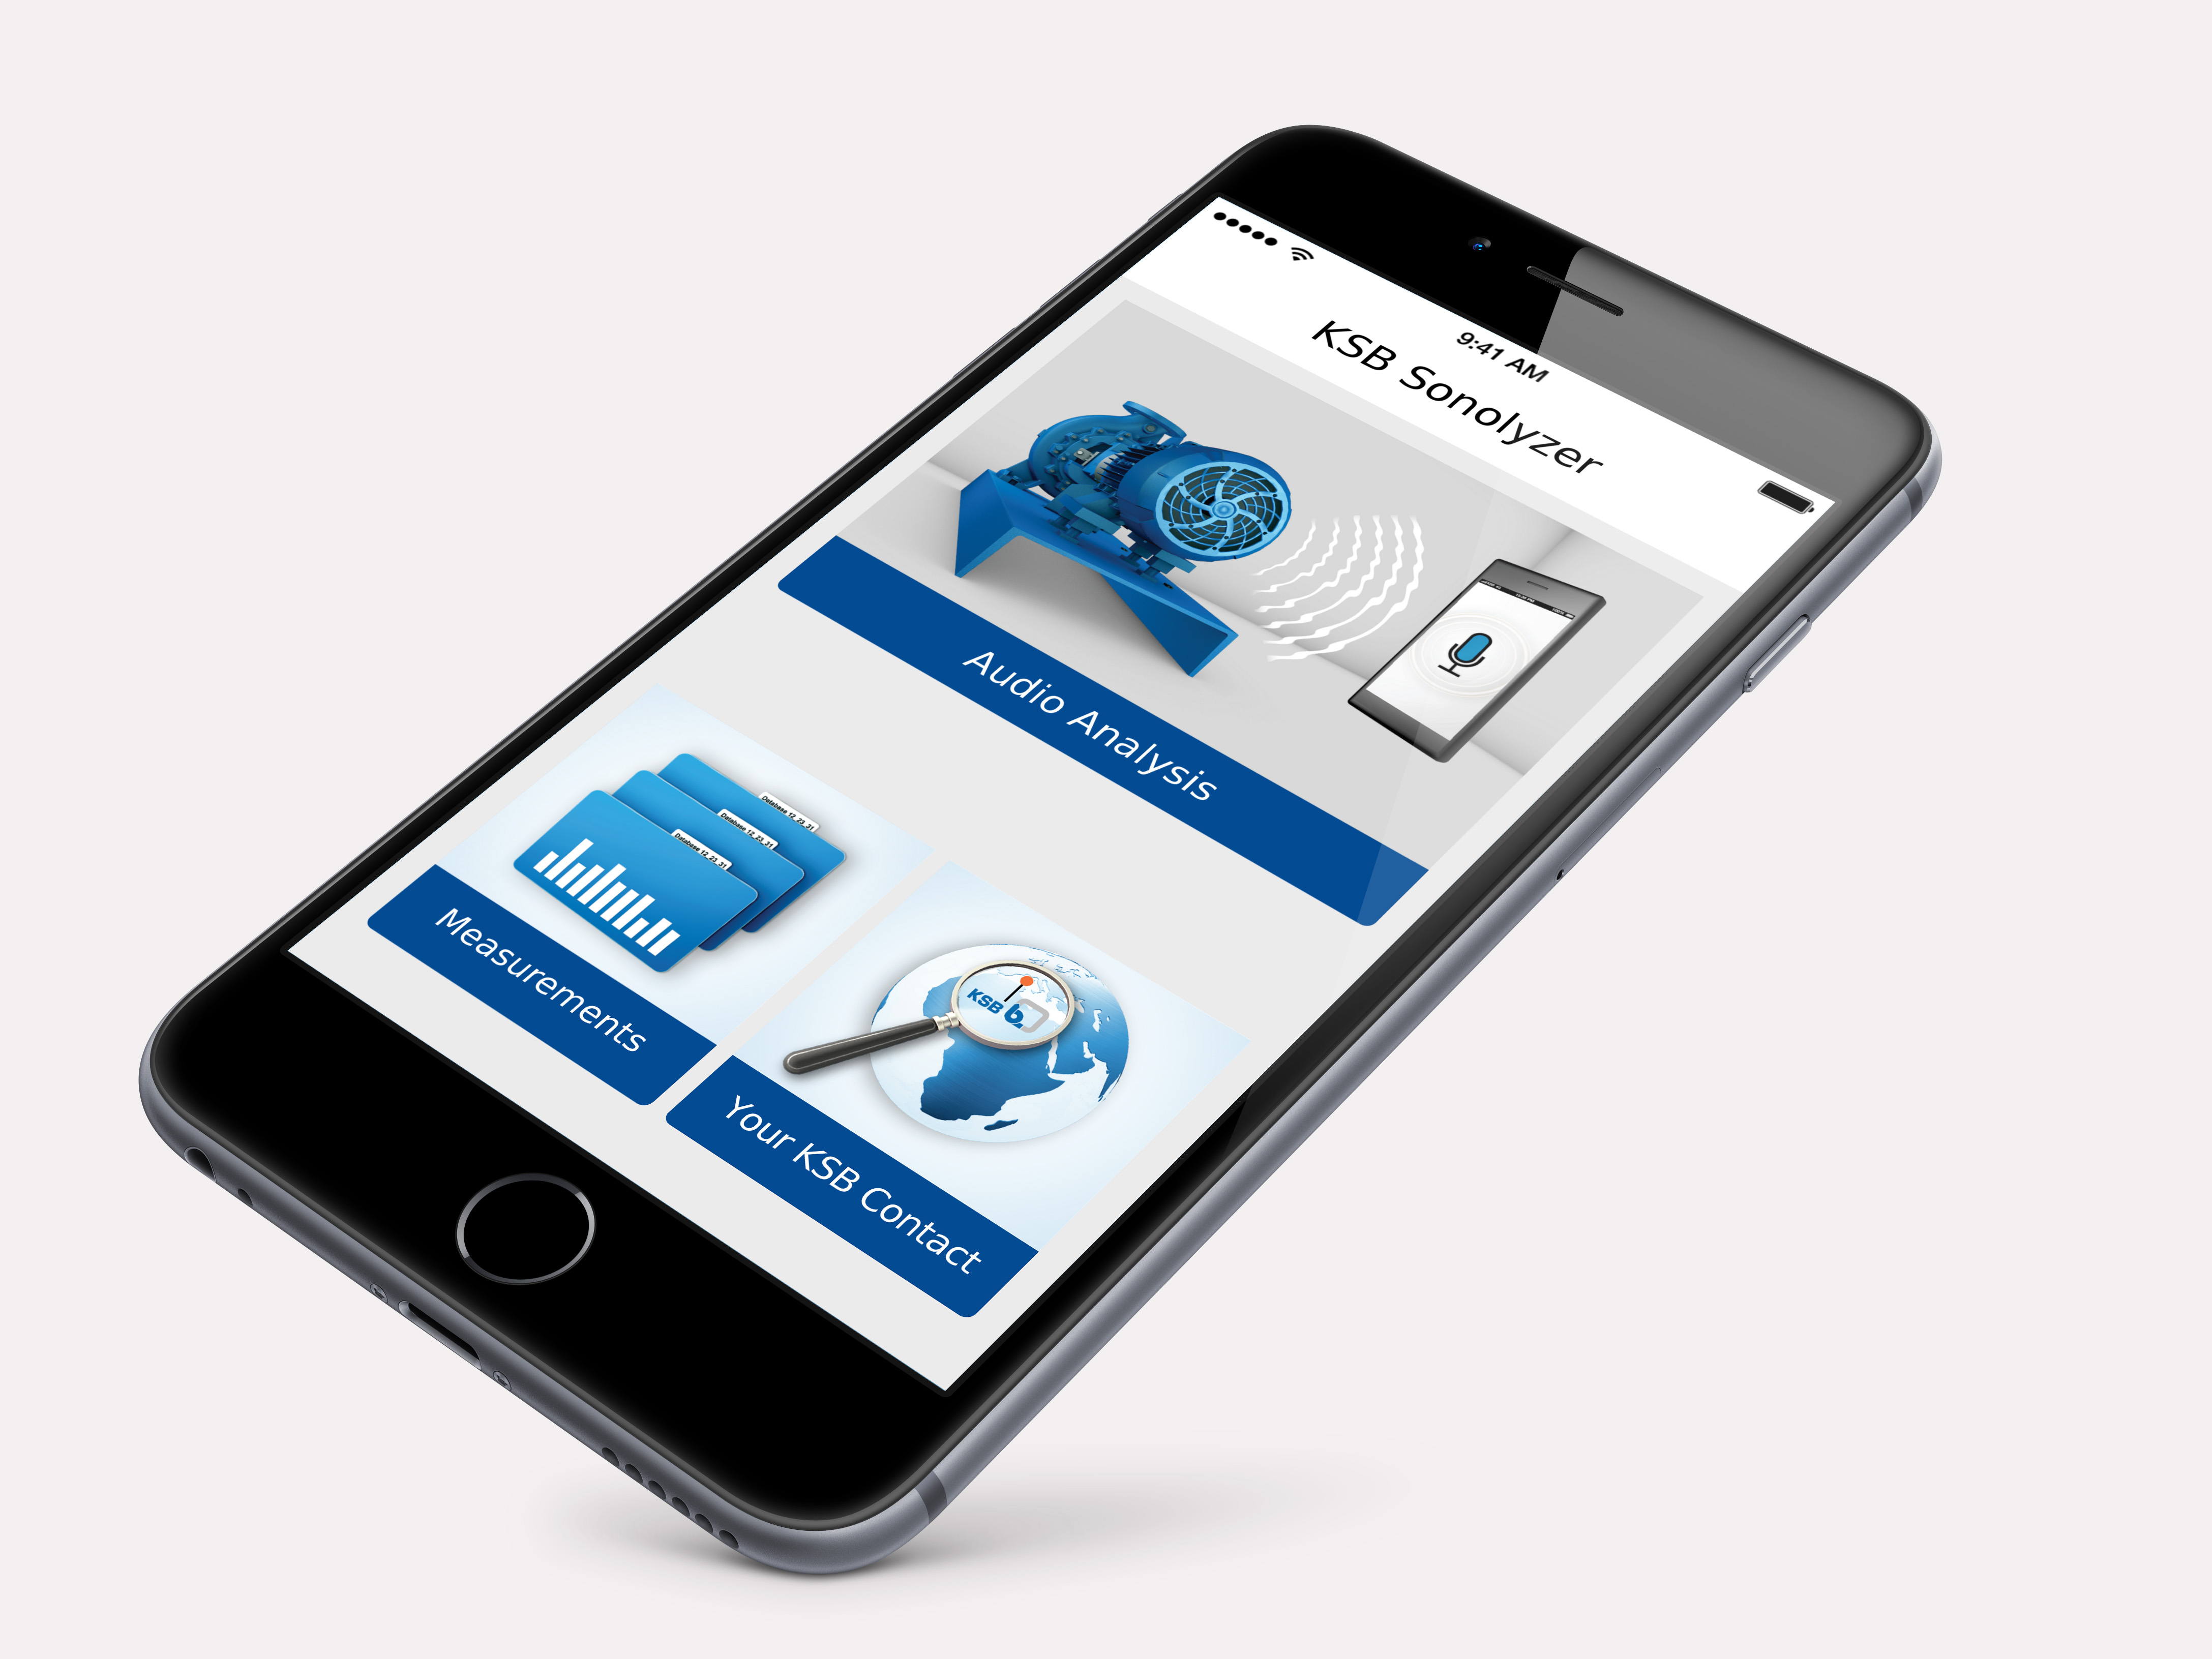 Mobile app brings Industry 4.0 to all pumps / ACHEMA 2015 | KSB